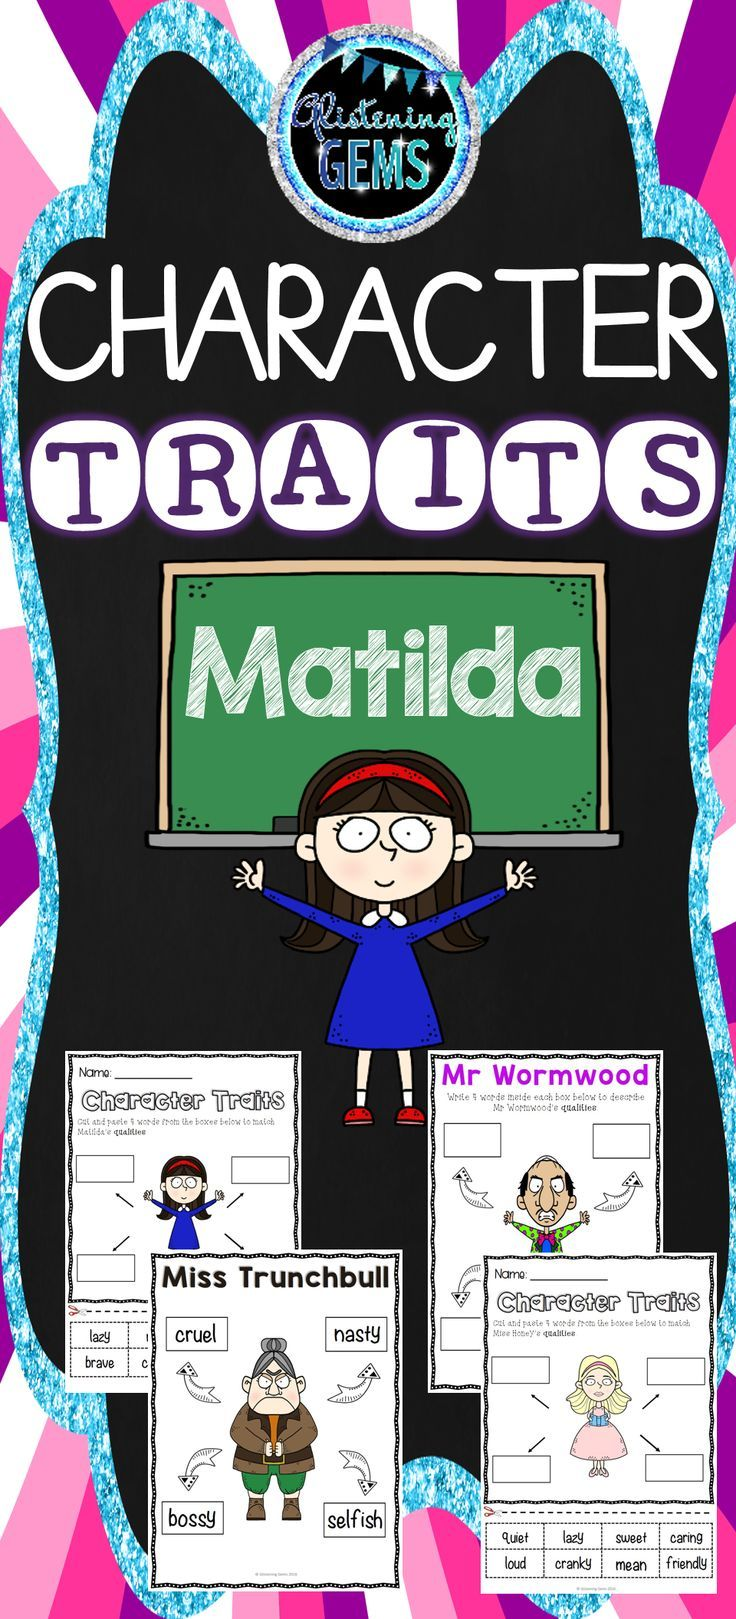 Matilda - Character Traits Activity Pack. No Prep cut and paste printables